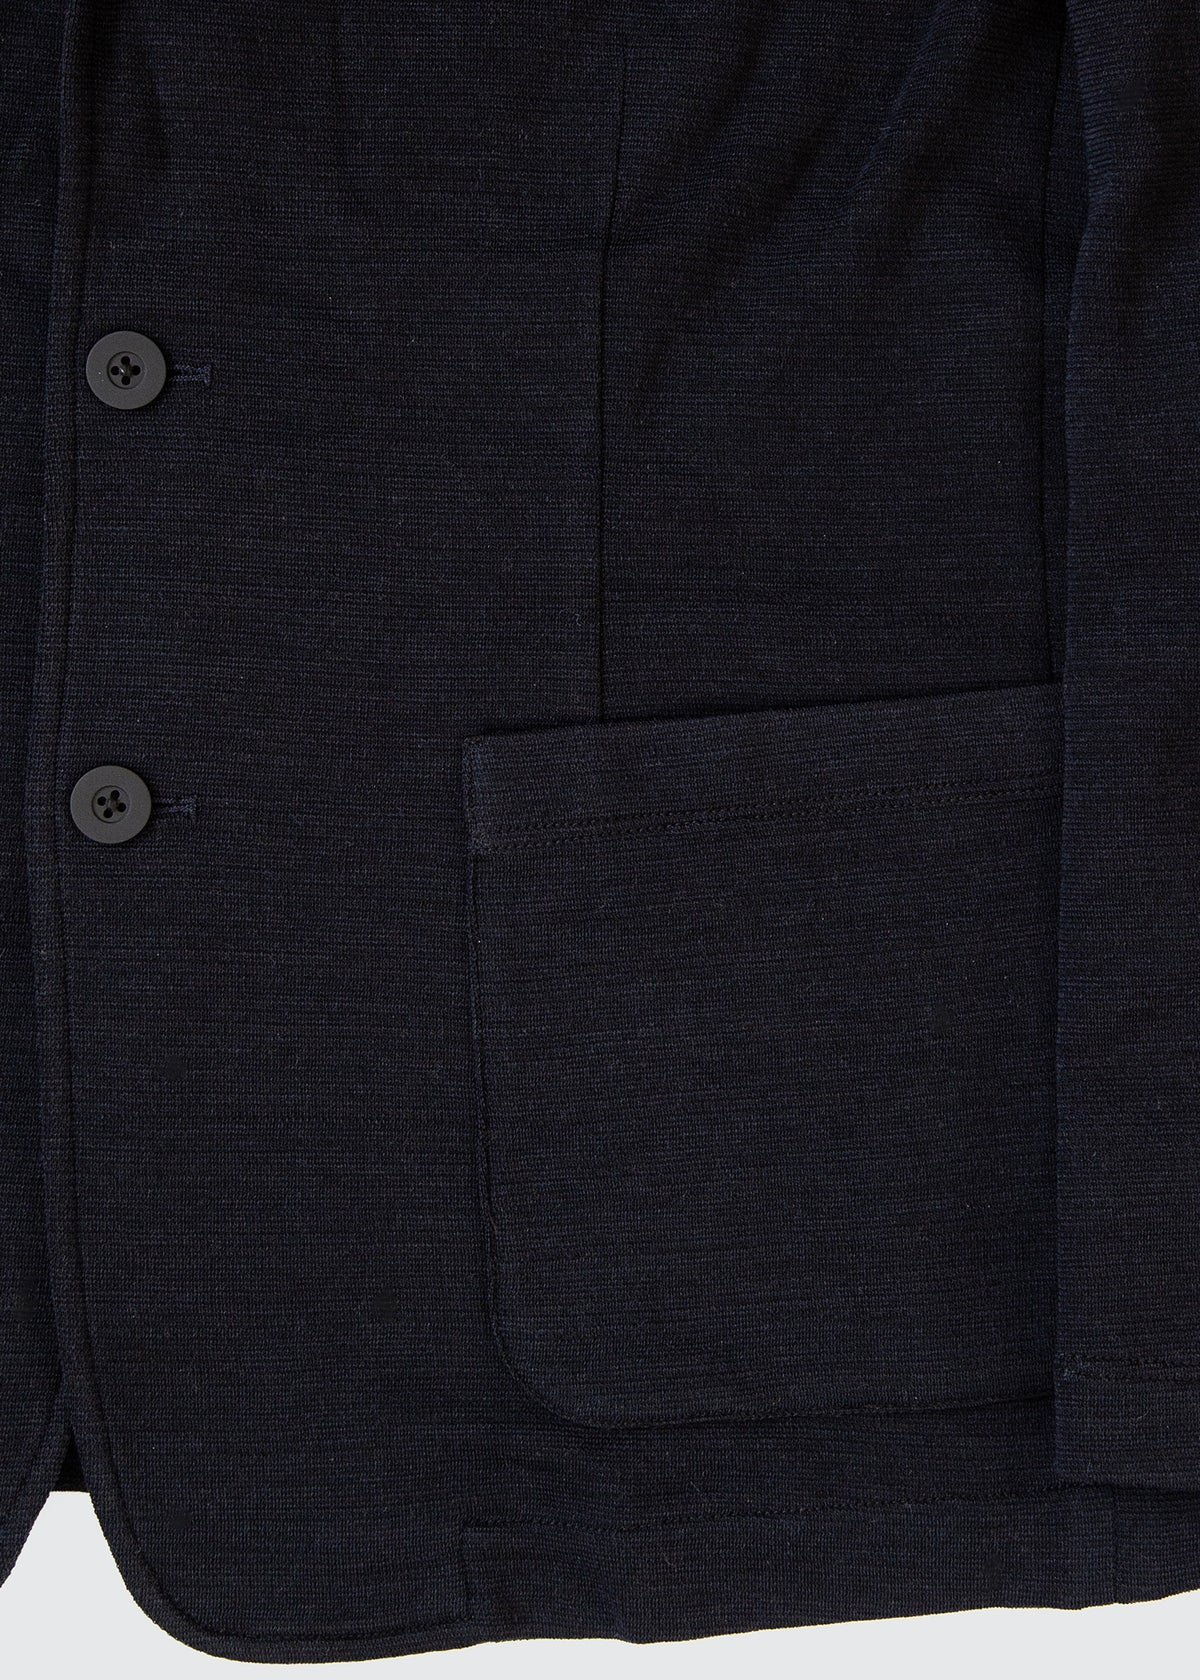 402 - BLAZER - NAVY - Wilson & Willy's - MPLS Neighbor Goods